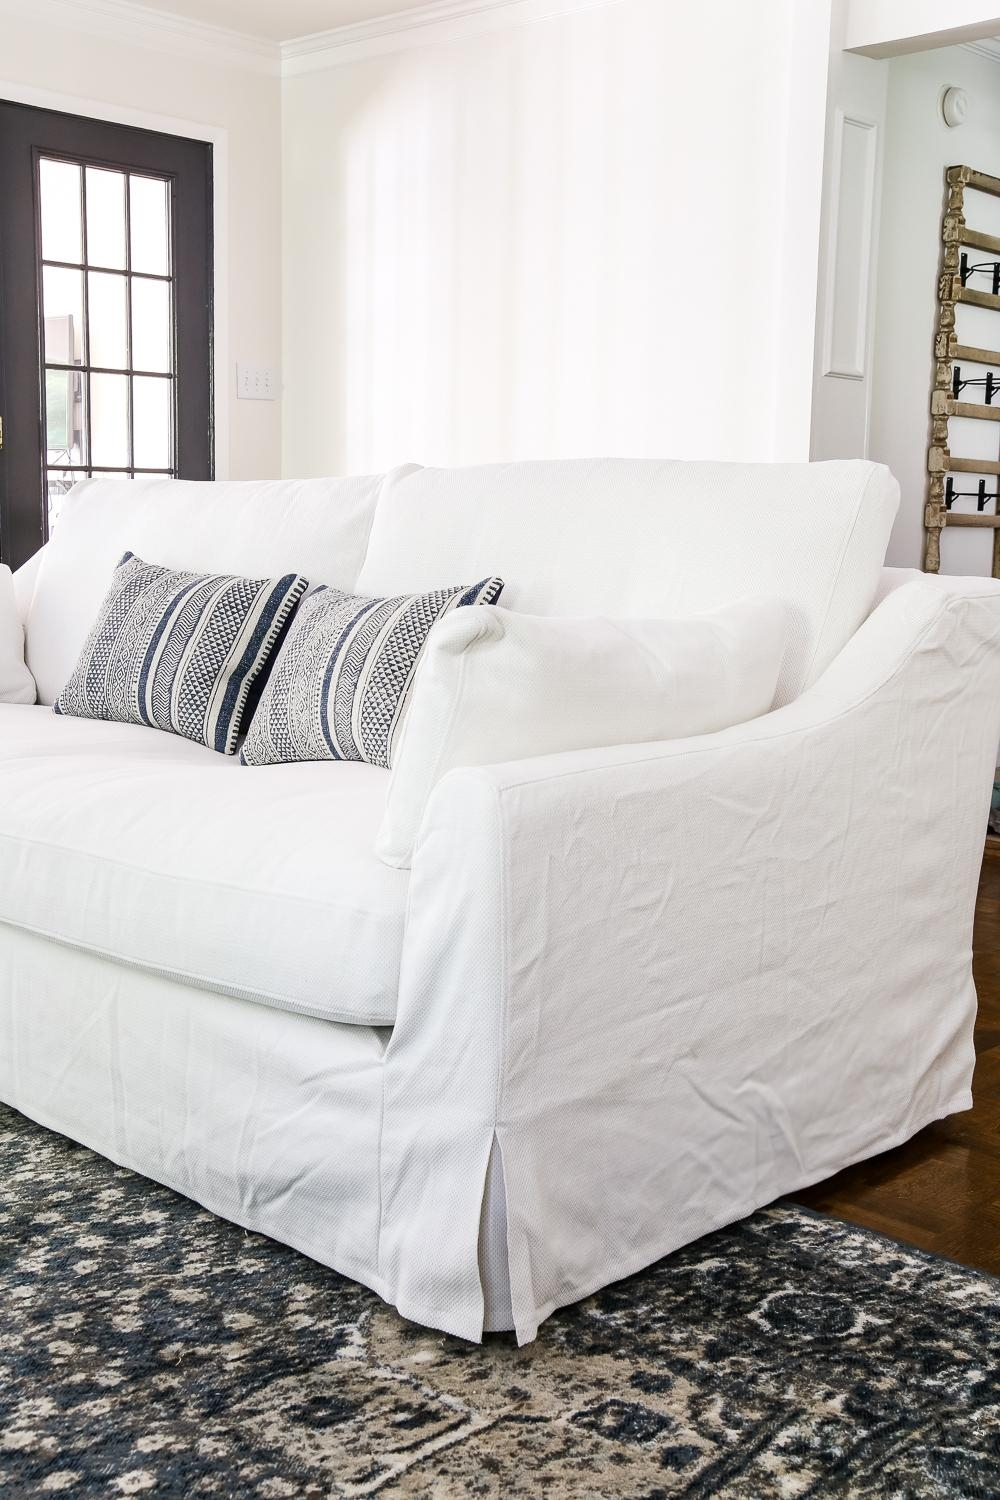 Ikea's New Sofa And Chairs And How To Keep Them Clean – Bless'er House Pertaining To Bedroom Sofas And Chairs (Image 17 of 20)